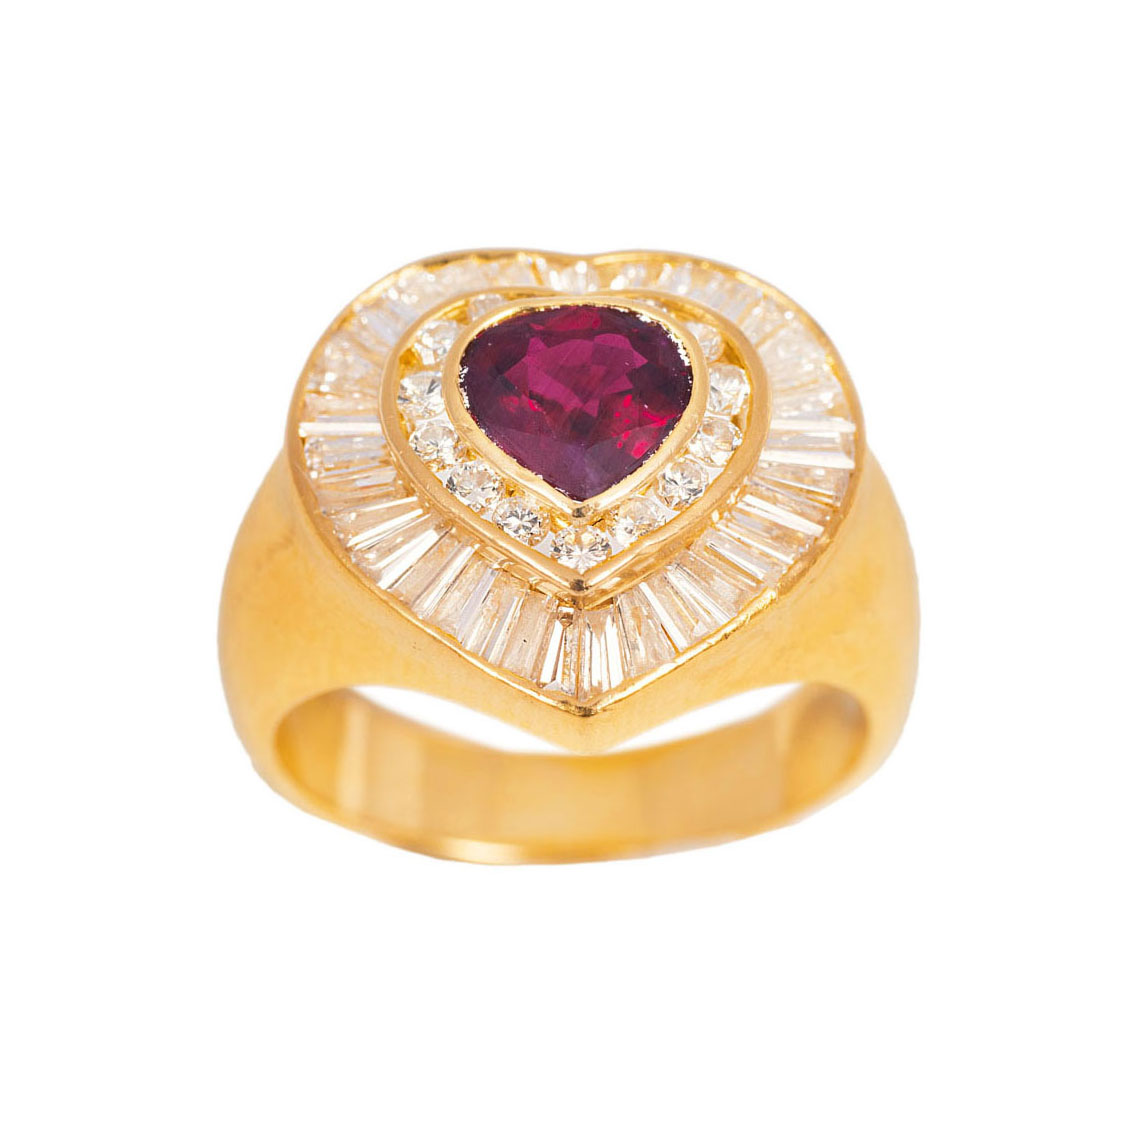 A ruby diamond ring in heart shape